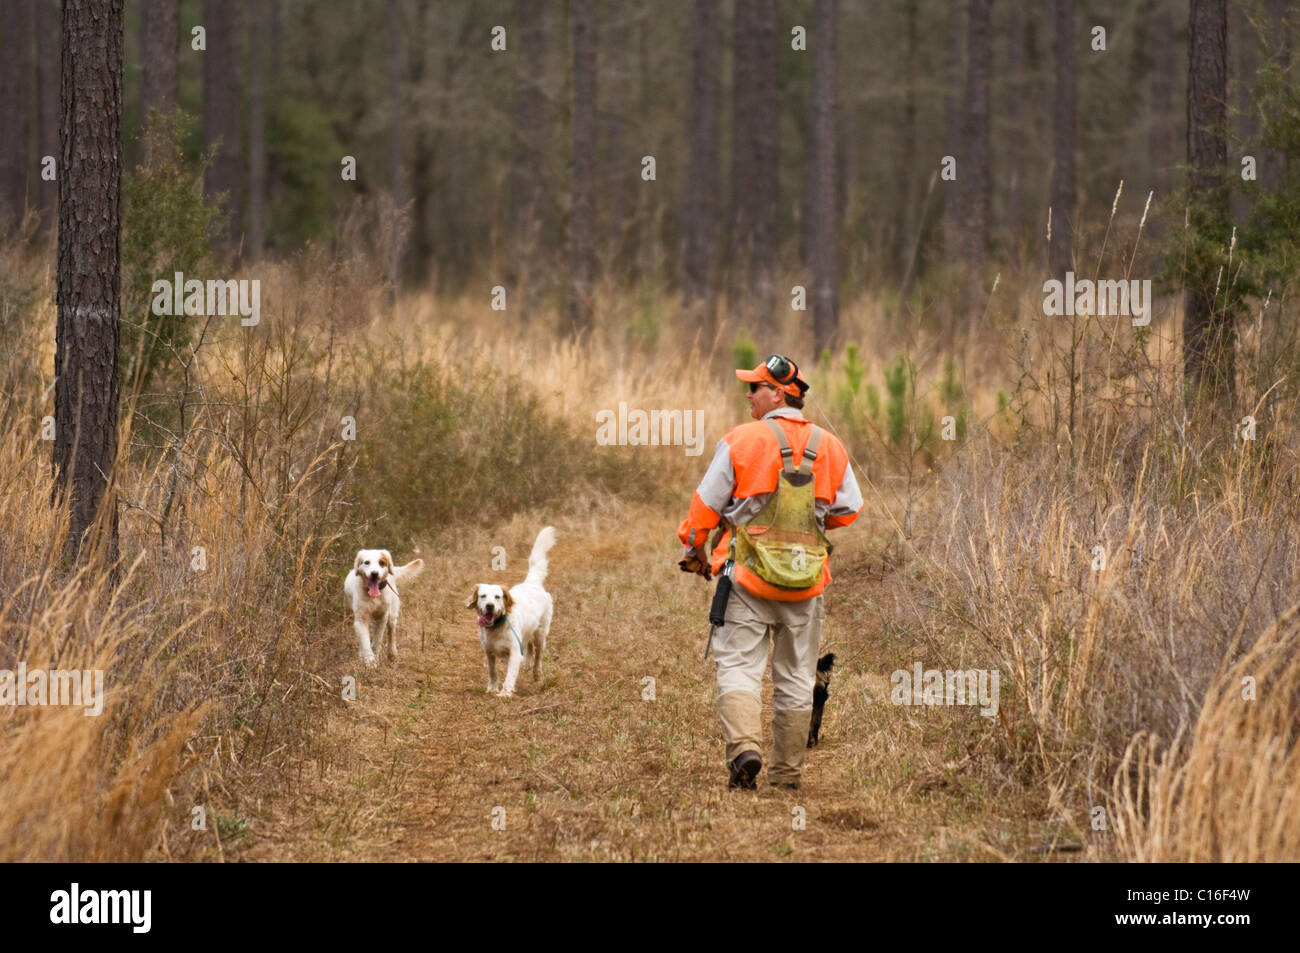 Hunting Guide and English Setters during a Bobwhite Quail Hunt in the Piney Woods of Dougherty County, Georgia - Stock Image